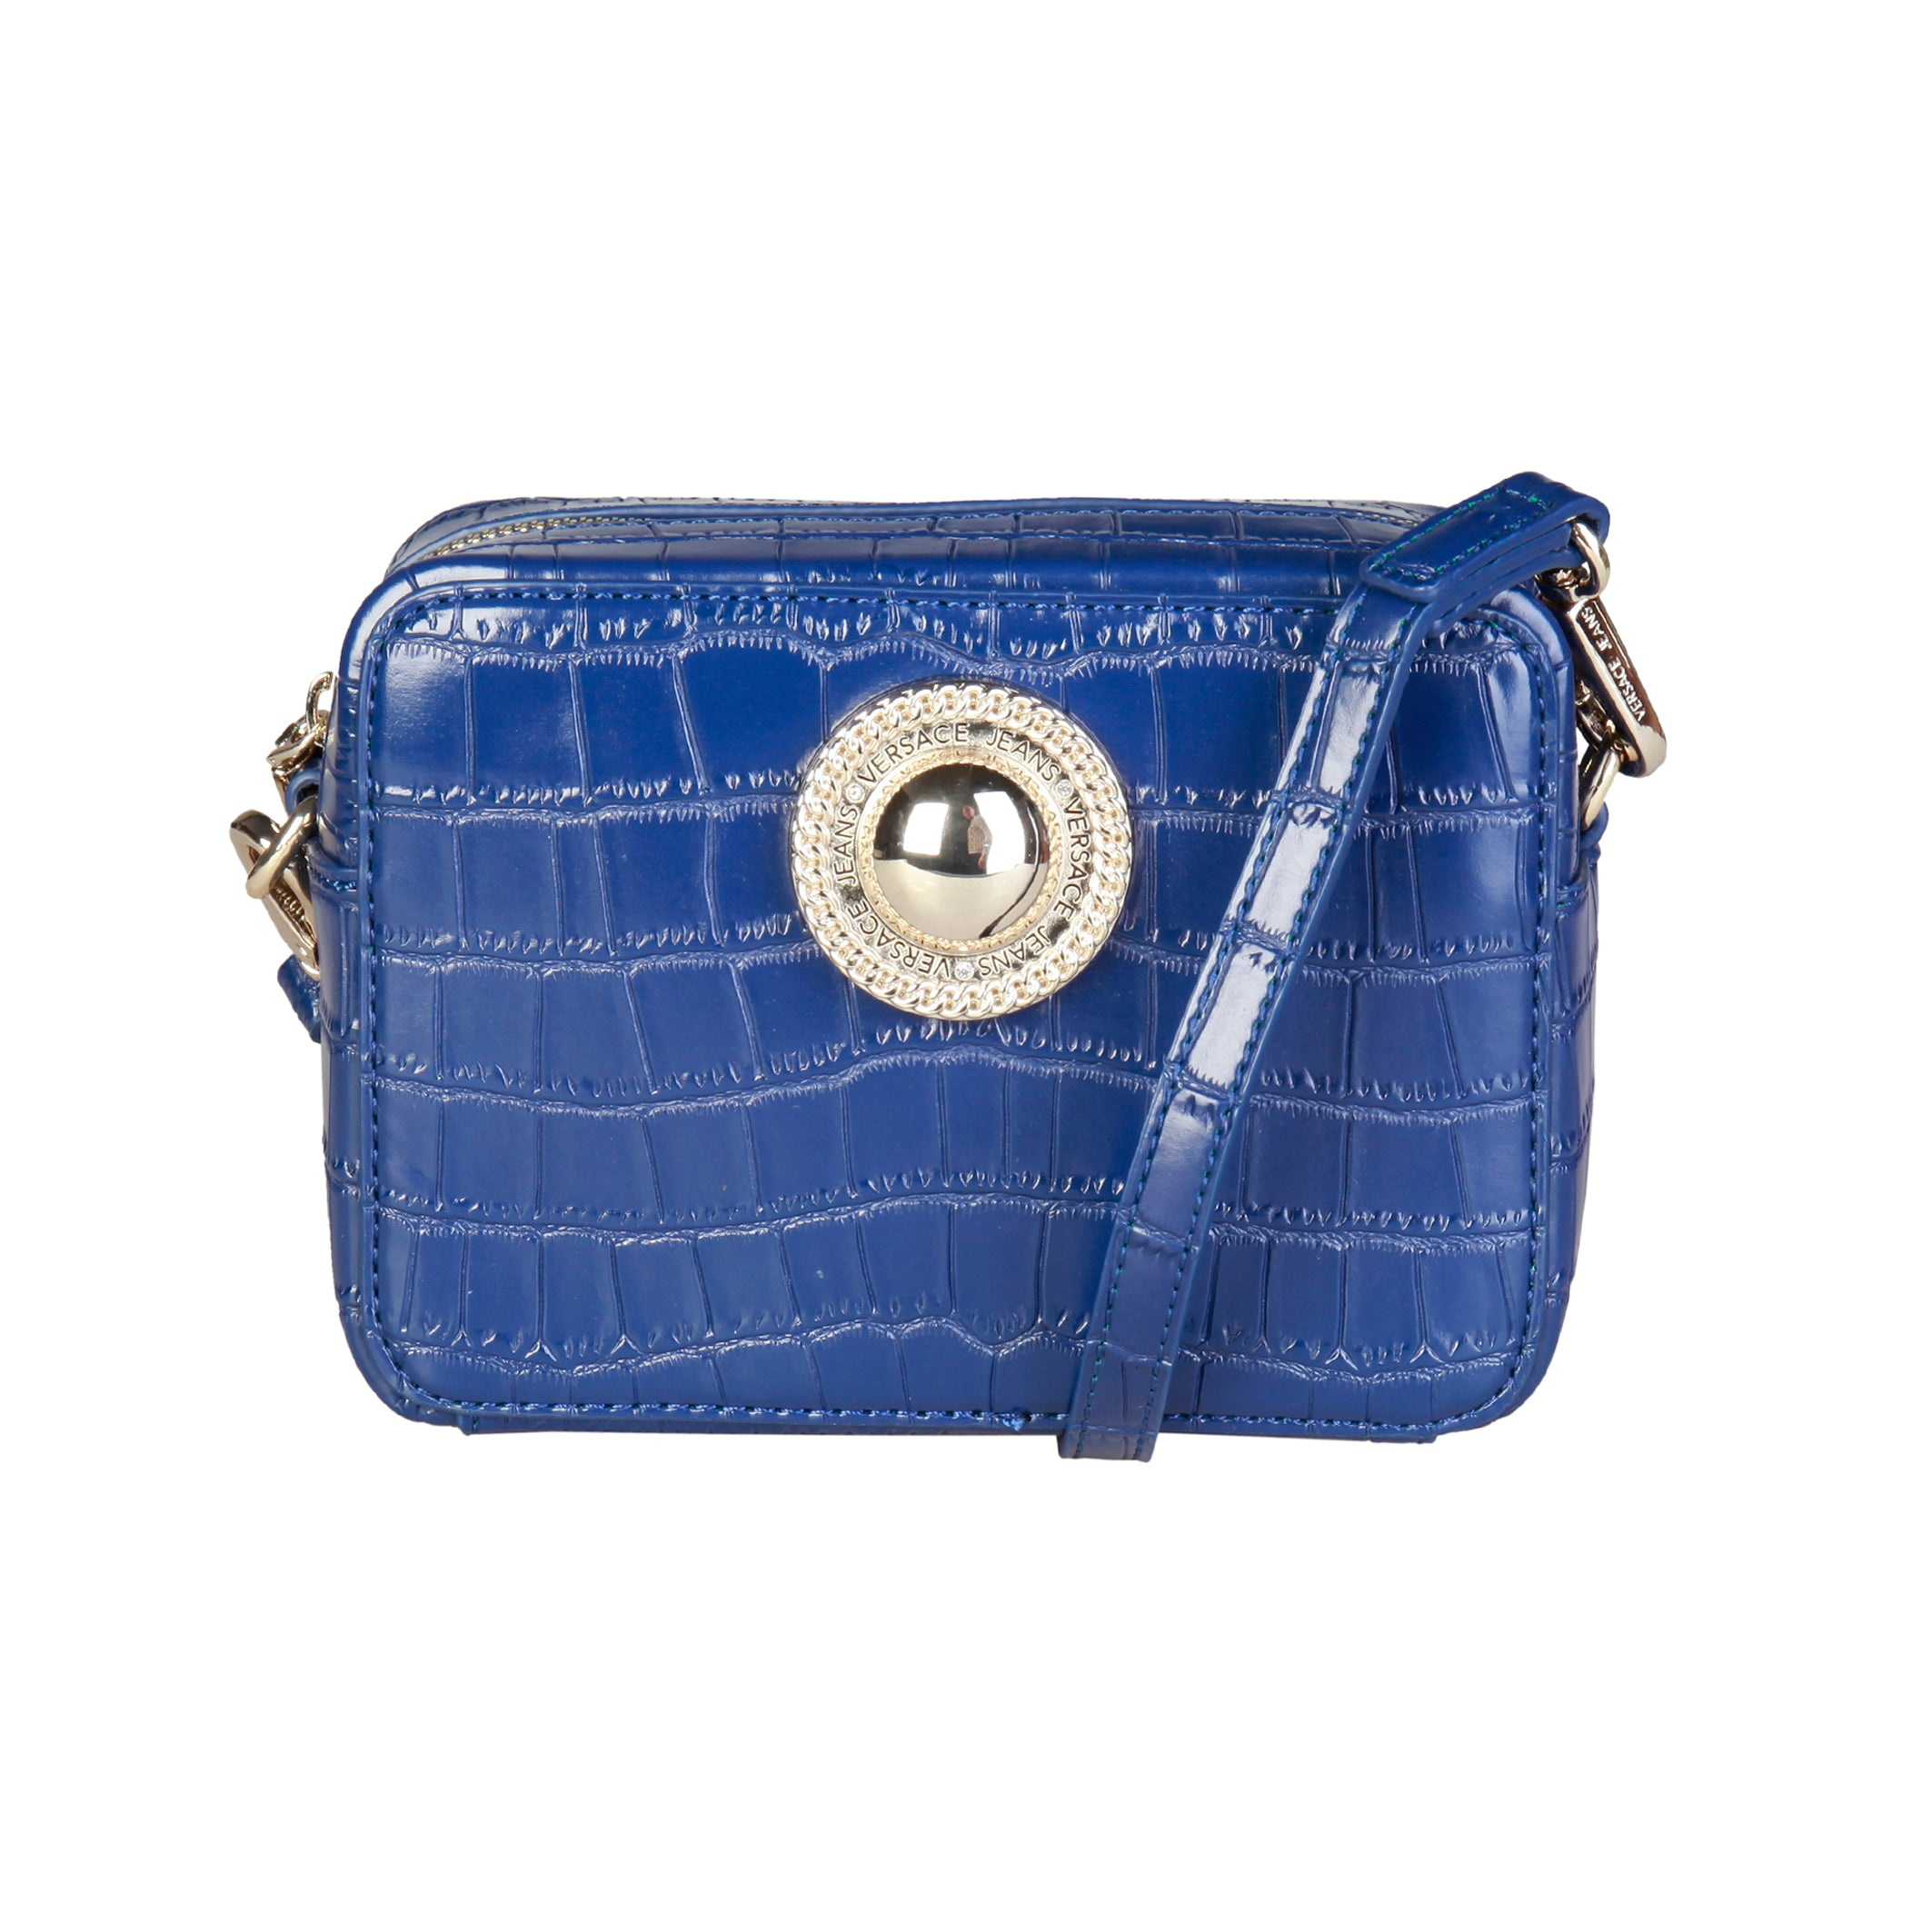 ee5a4fda24 Versace Jeans Womens Crossbody Bags E1VQBBGB-75456 – Gifts Are Blue